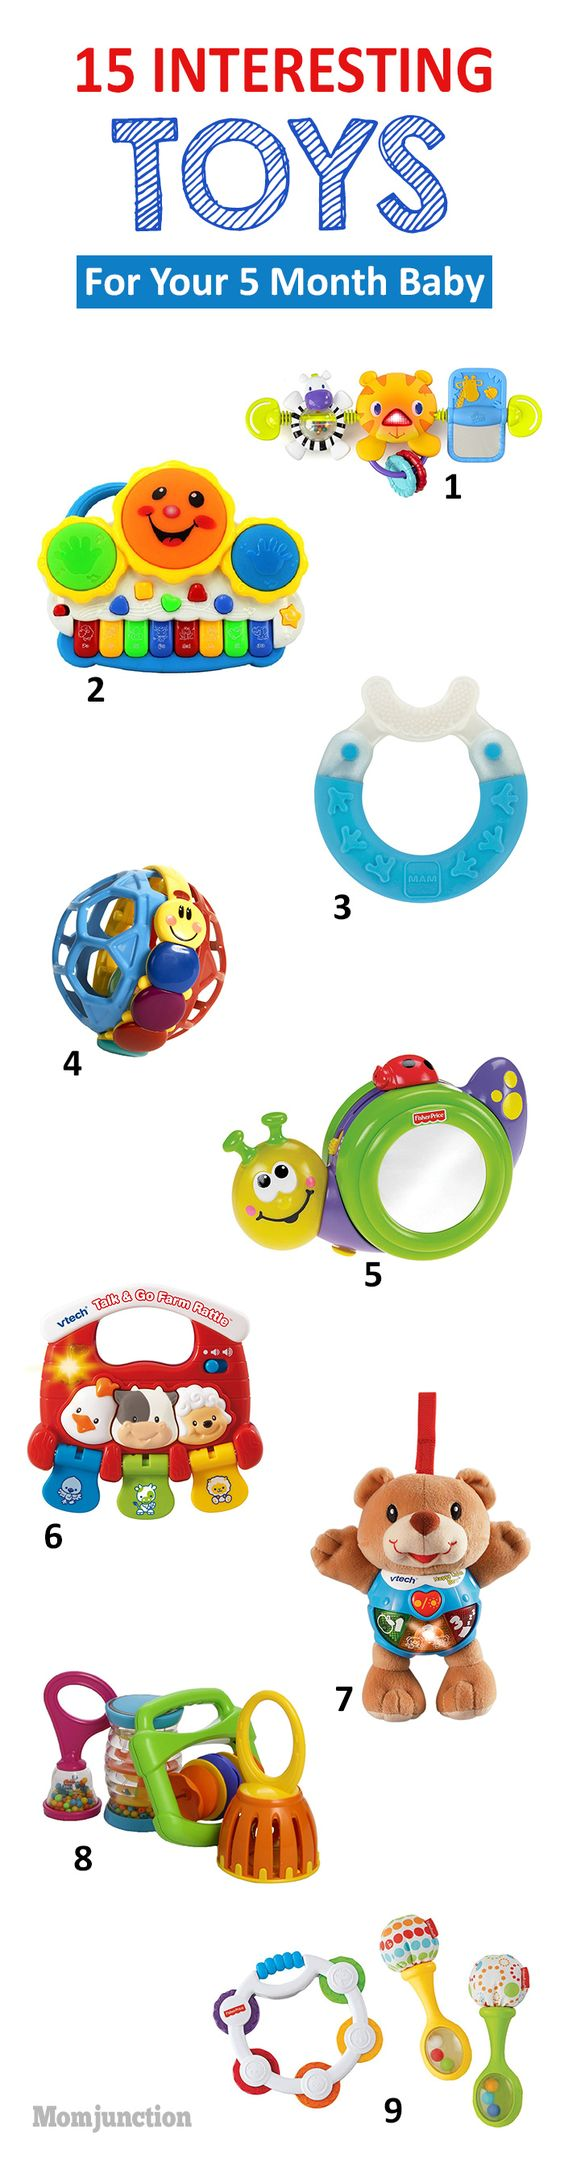 Wonderful 5 Month Old Christmas Gift Ideas Part - 14: Christmas Present Ideas For A 5 Month Old